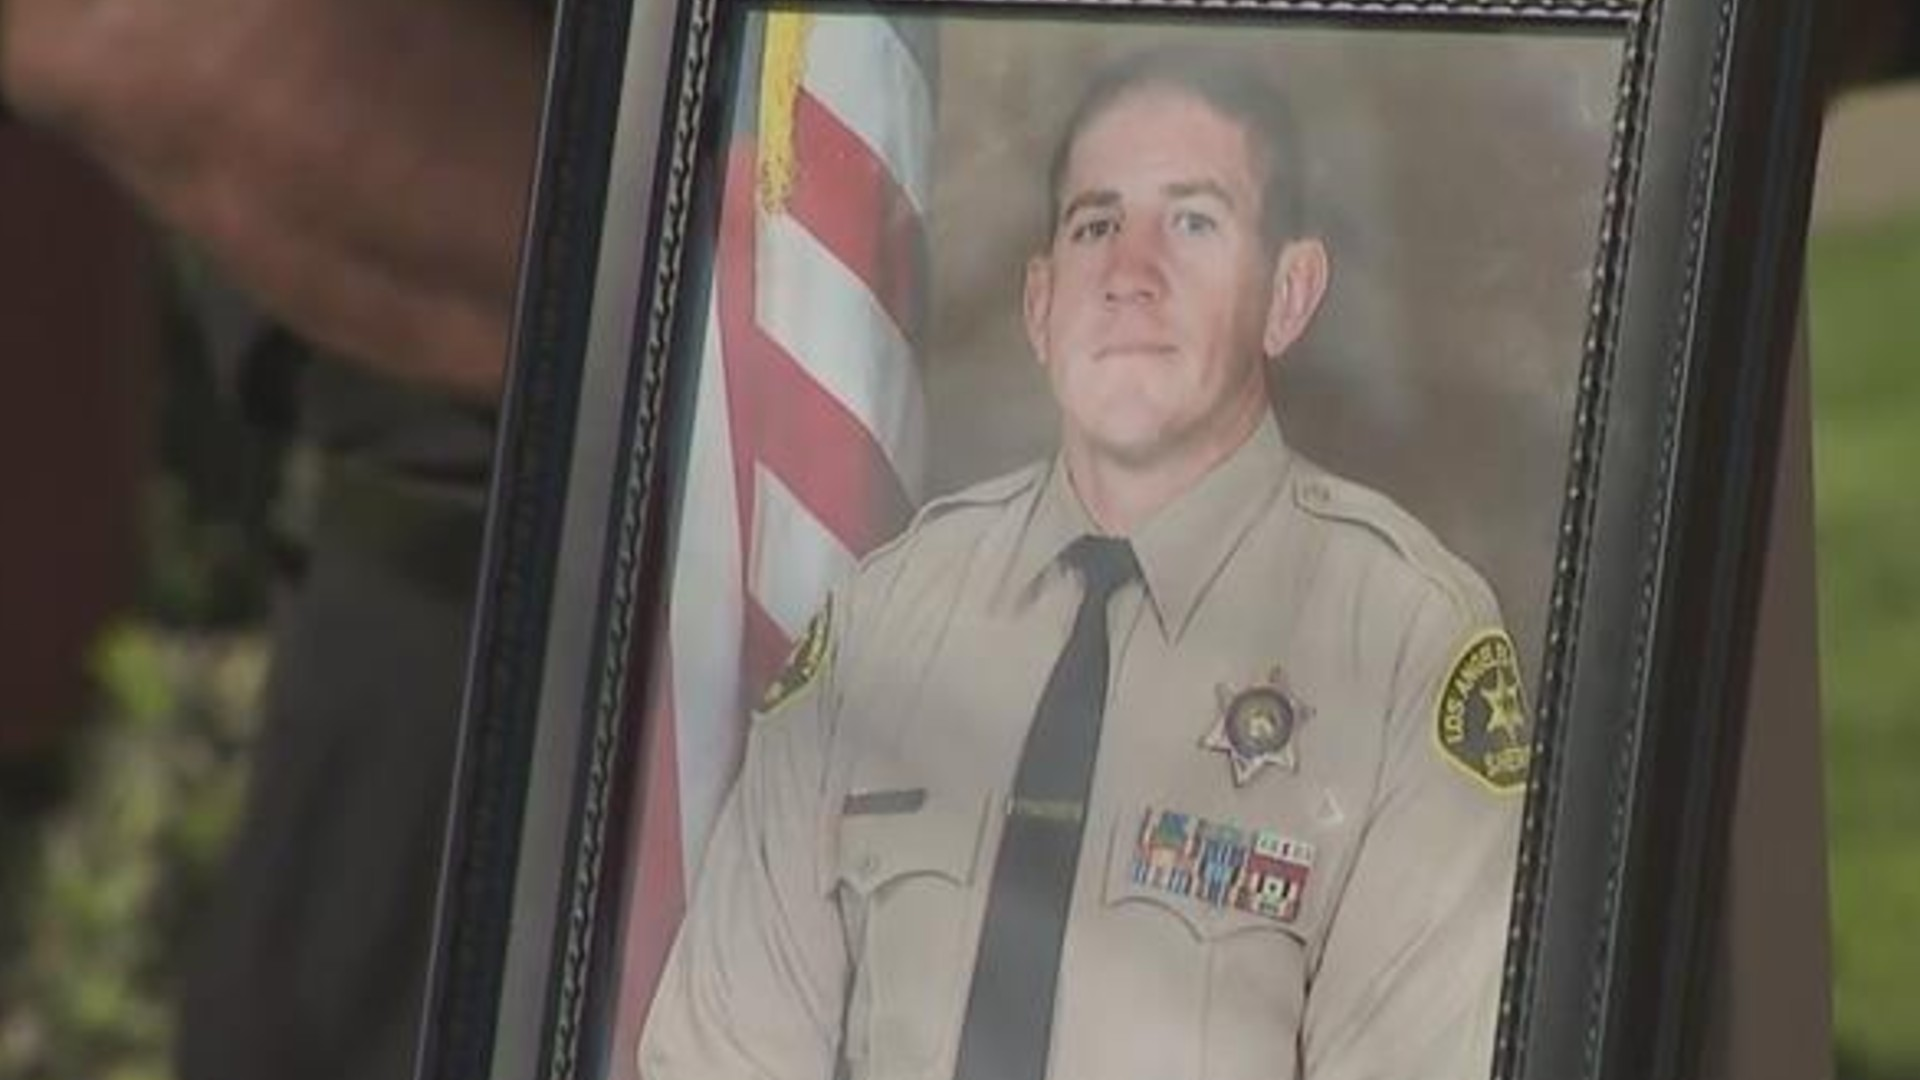 Deputy Thomas Albanese is seen in a photo at a news conference on Feb. 25, 2021. (KTLA)